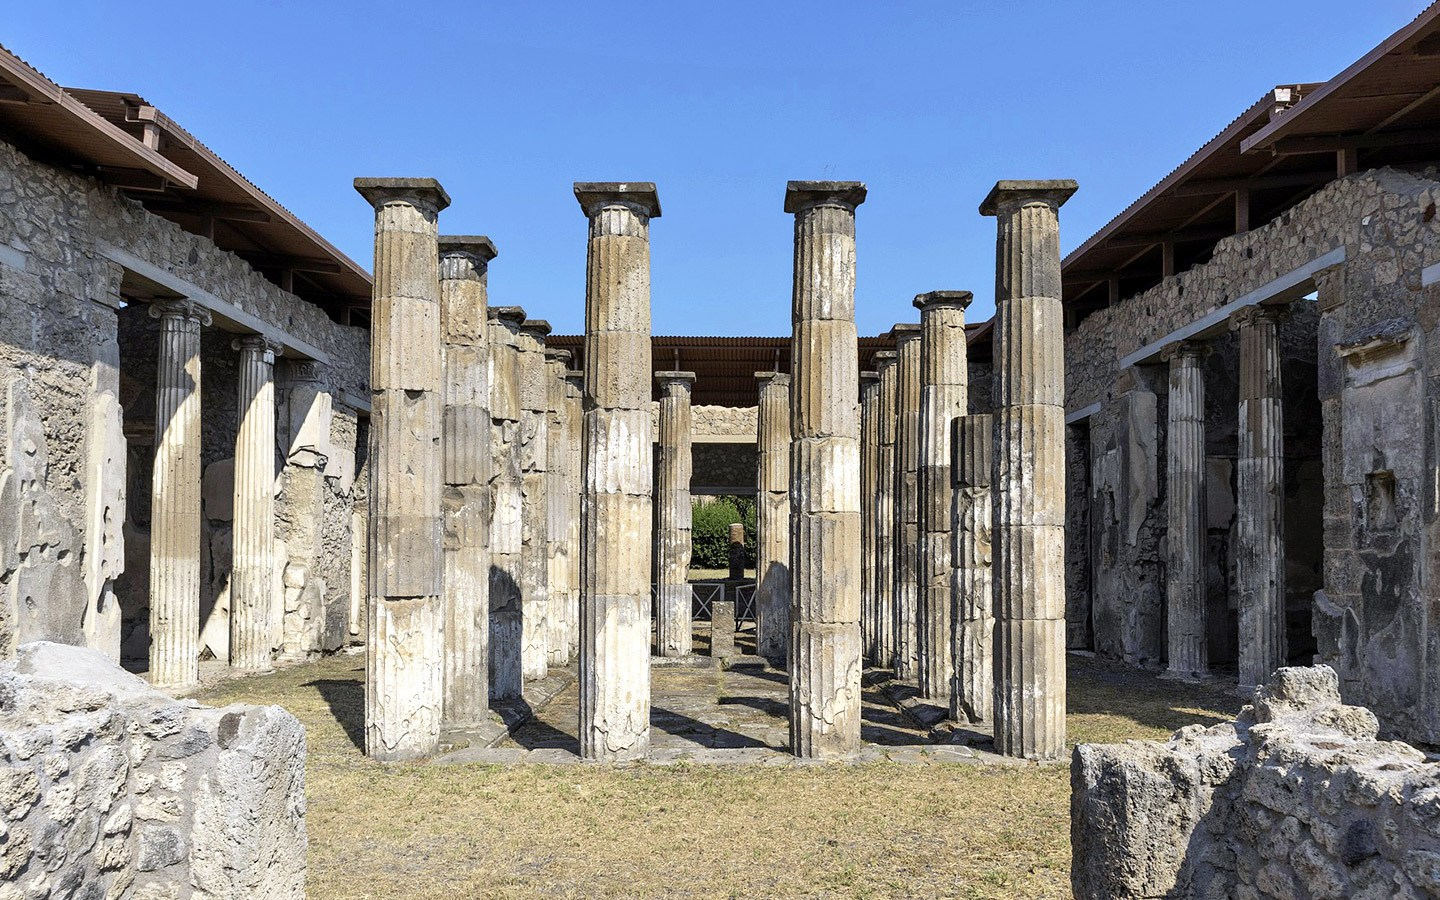 Temple columns at Pompeii